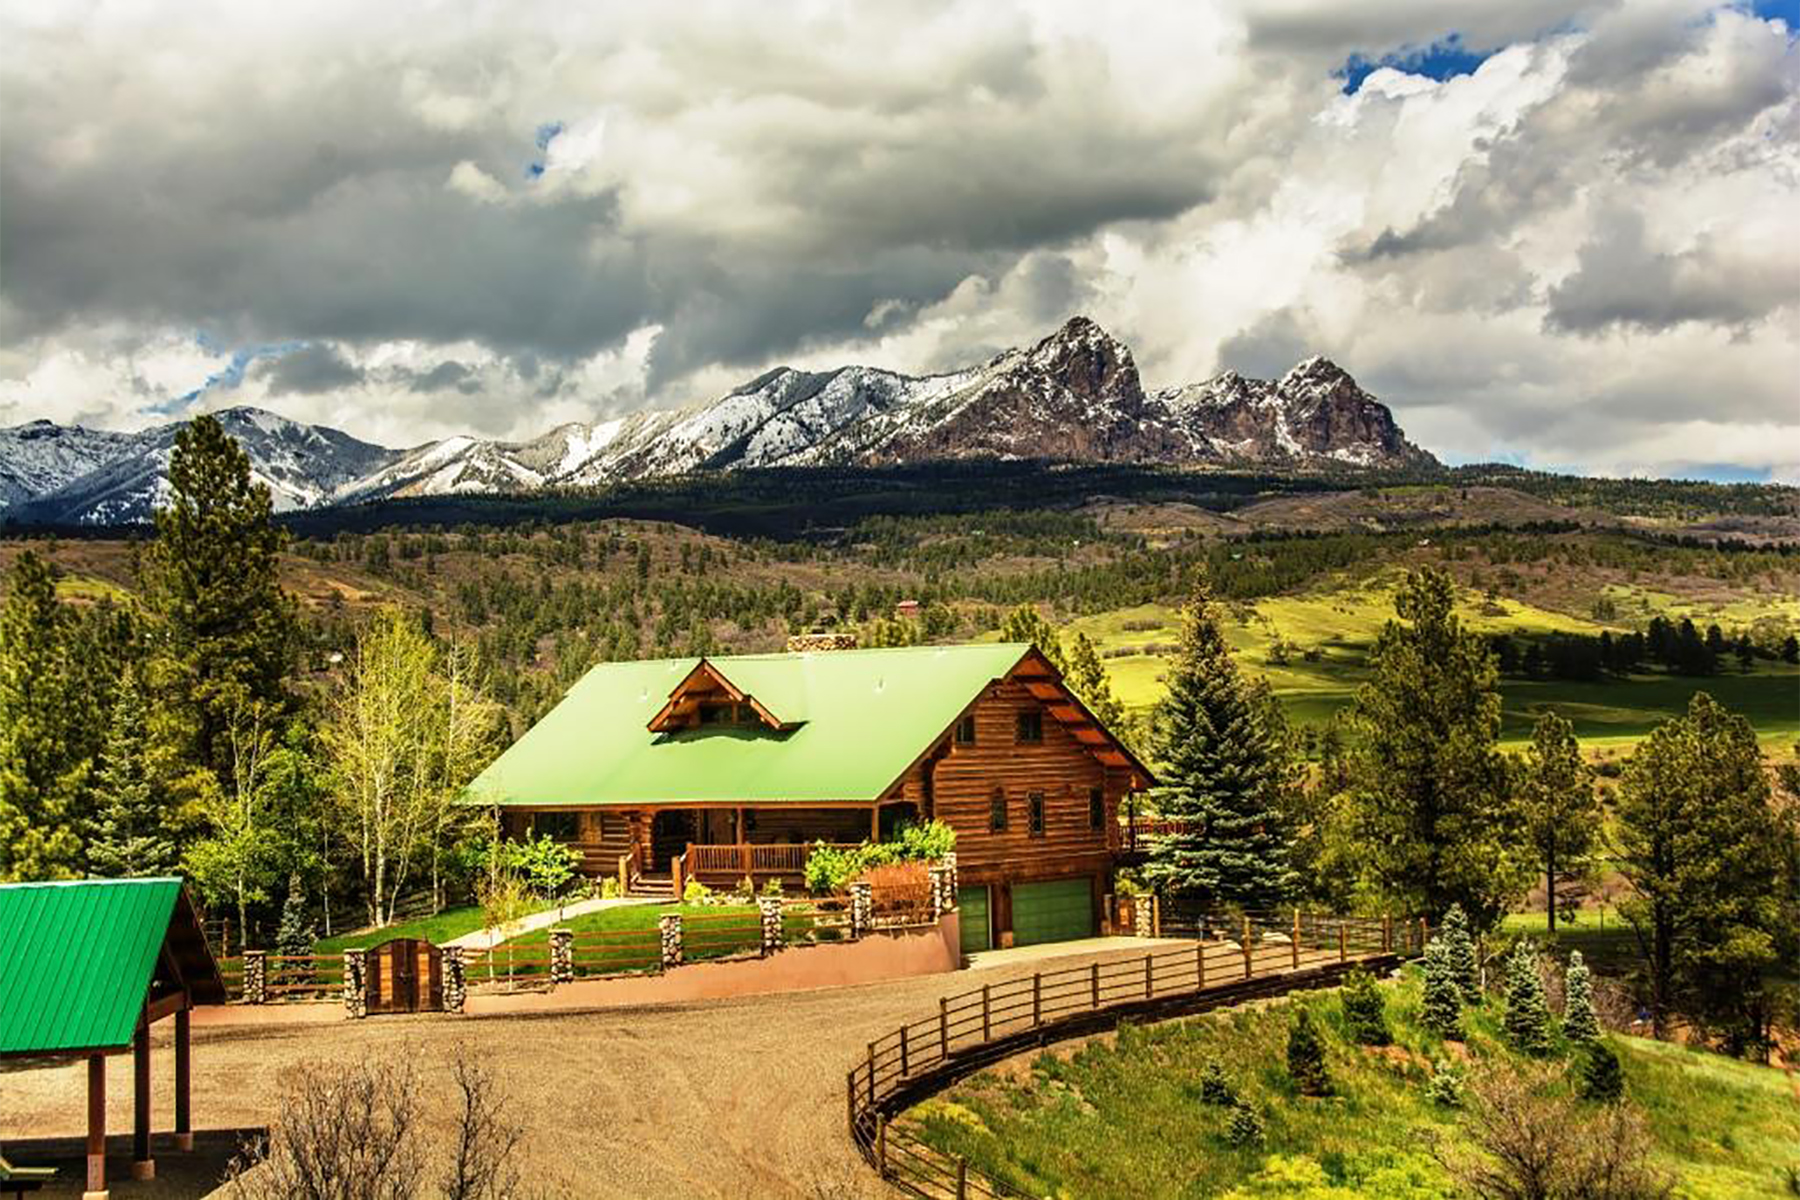 Single Family Homes for Sale at Cross Bell Ranch 2851 Cty Rd 382 Pagosa Springs, Colorado 81128 United States